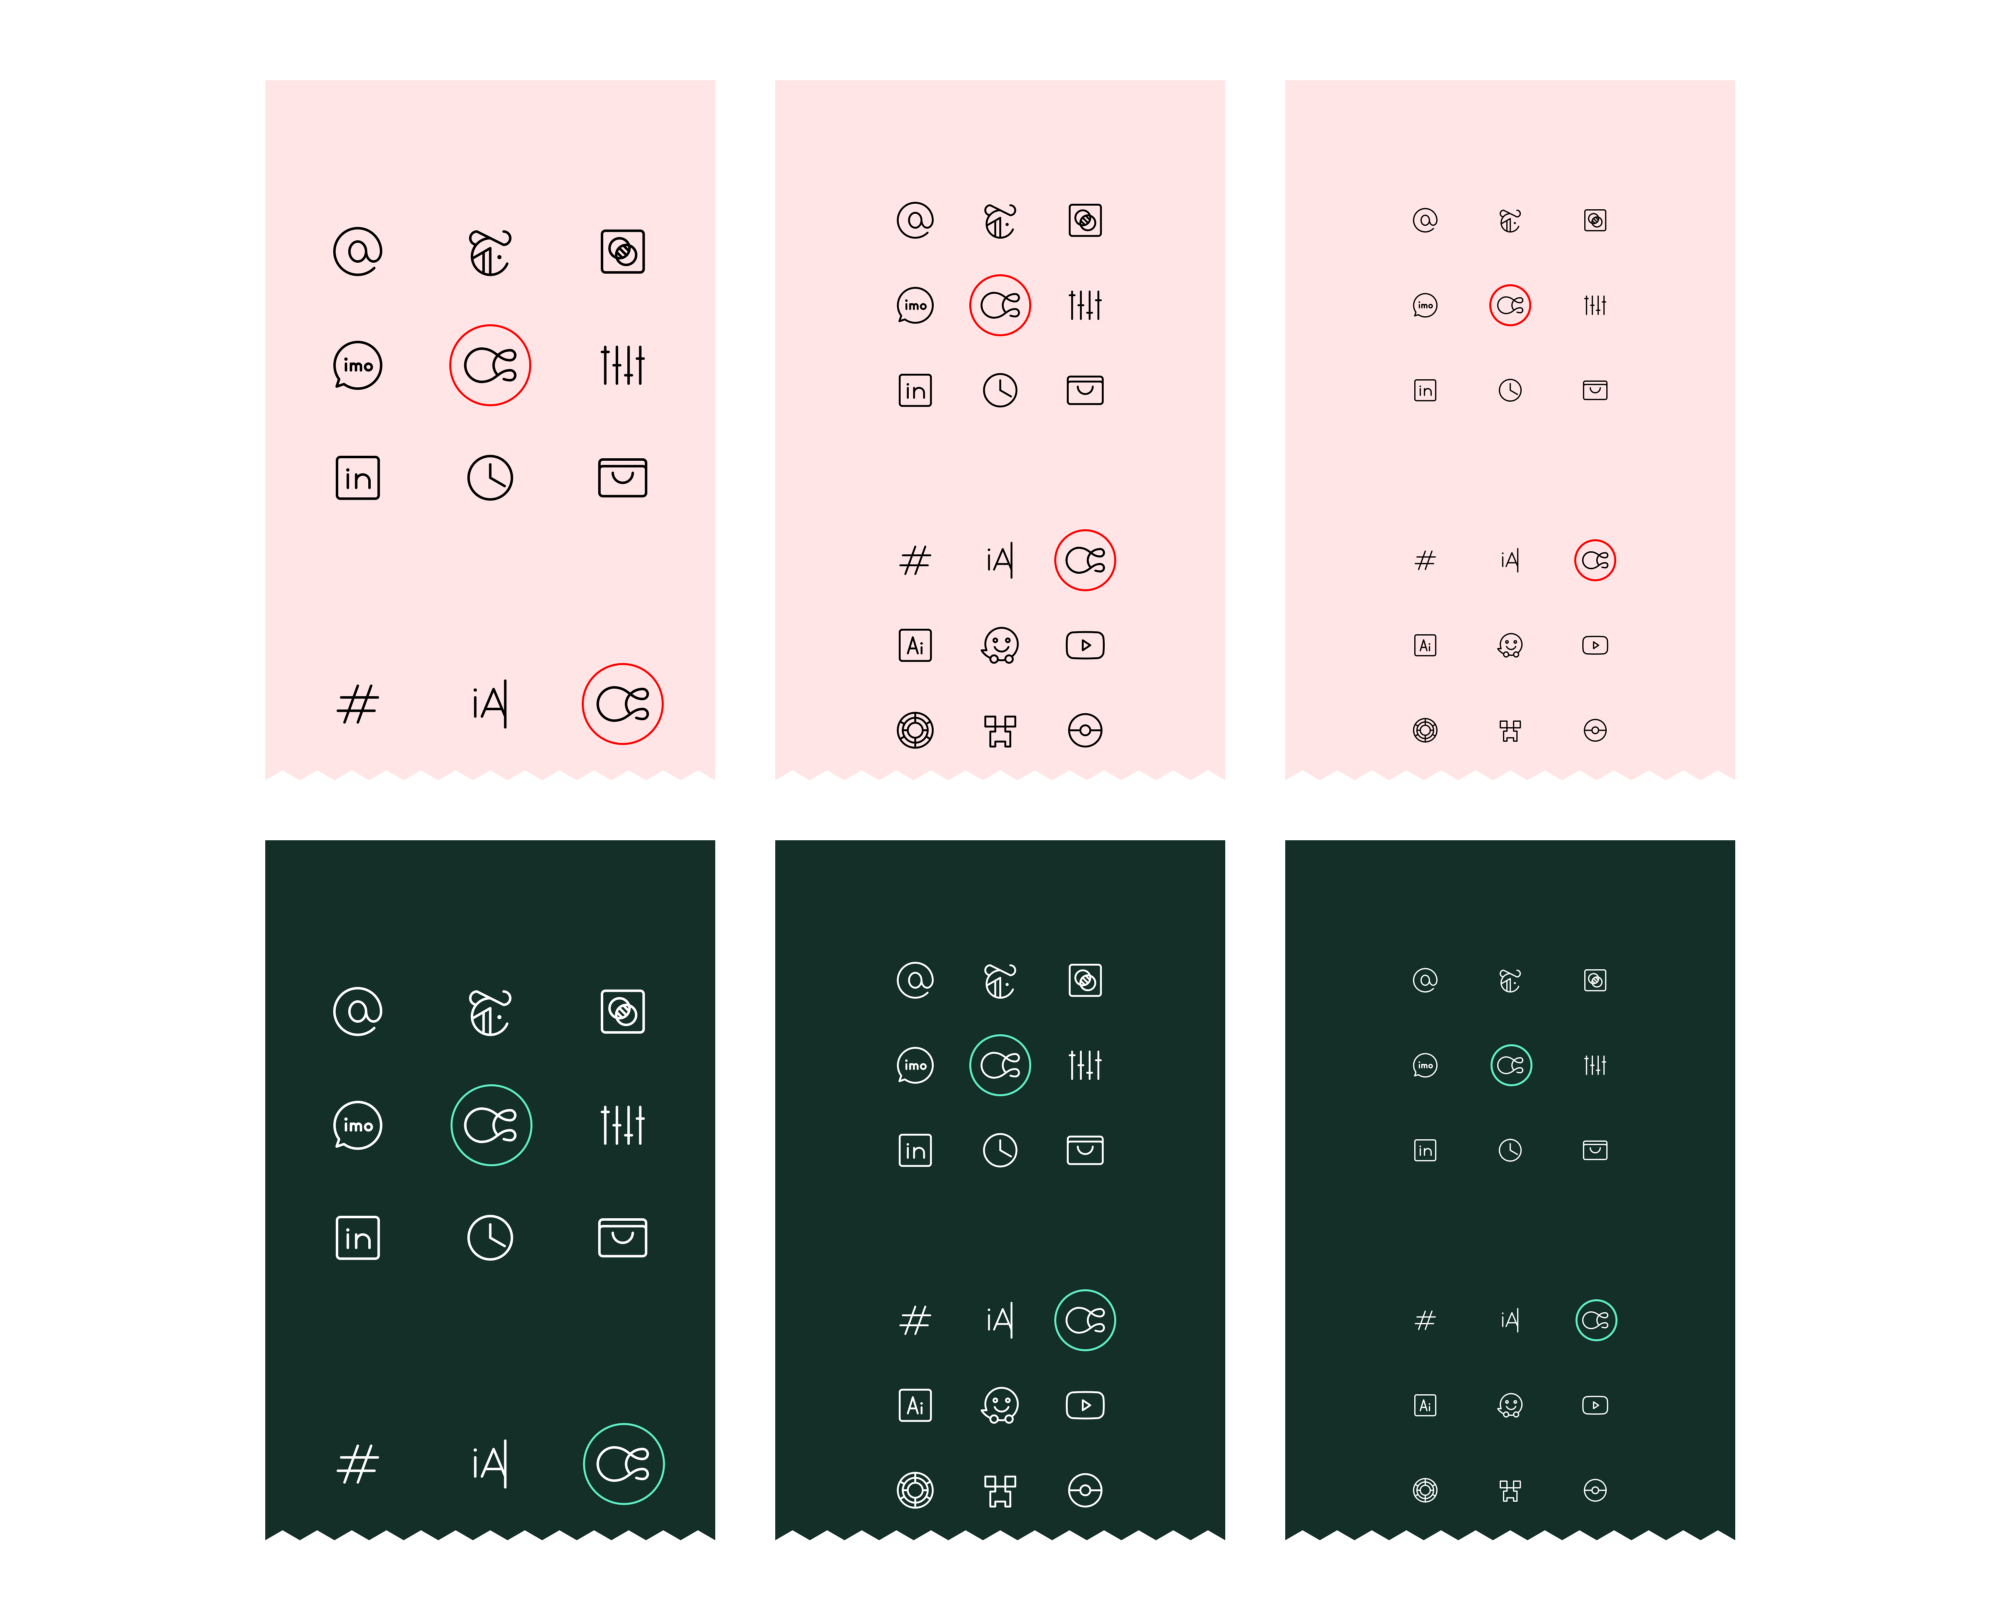 Test sheets set the icon against others in the family